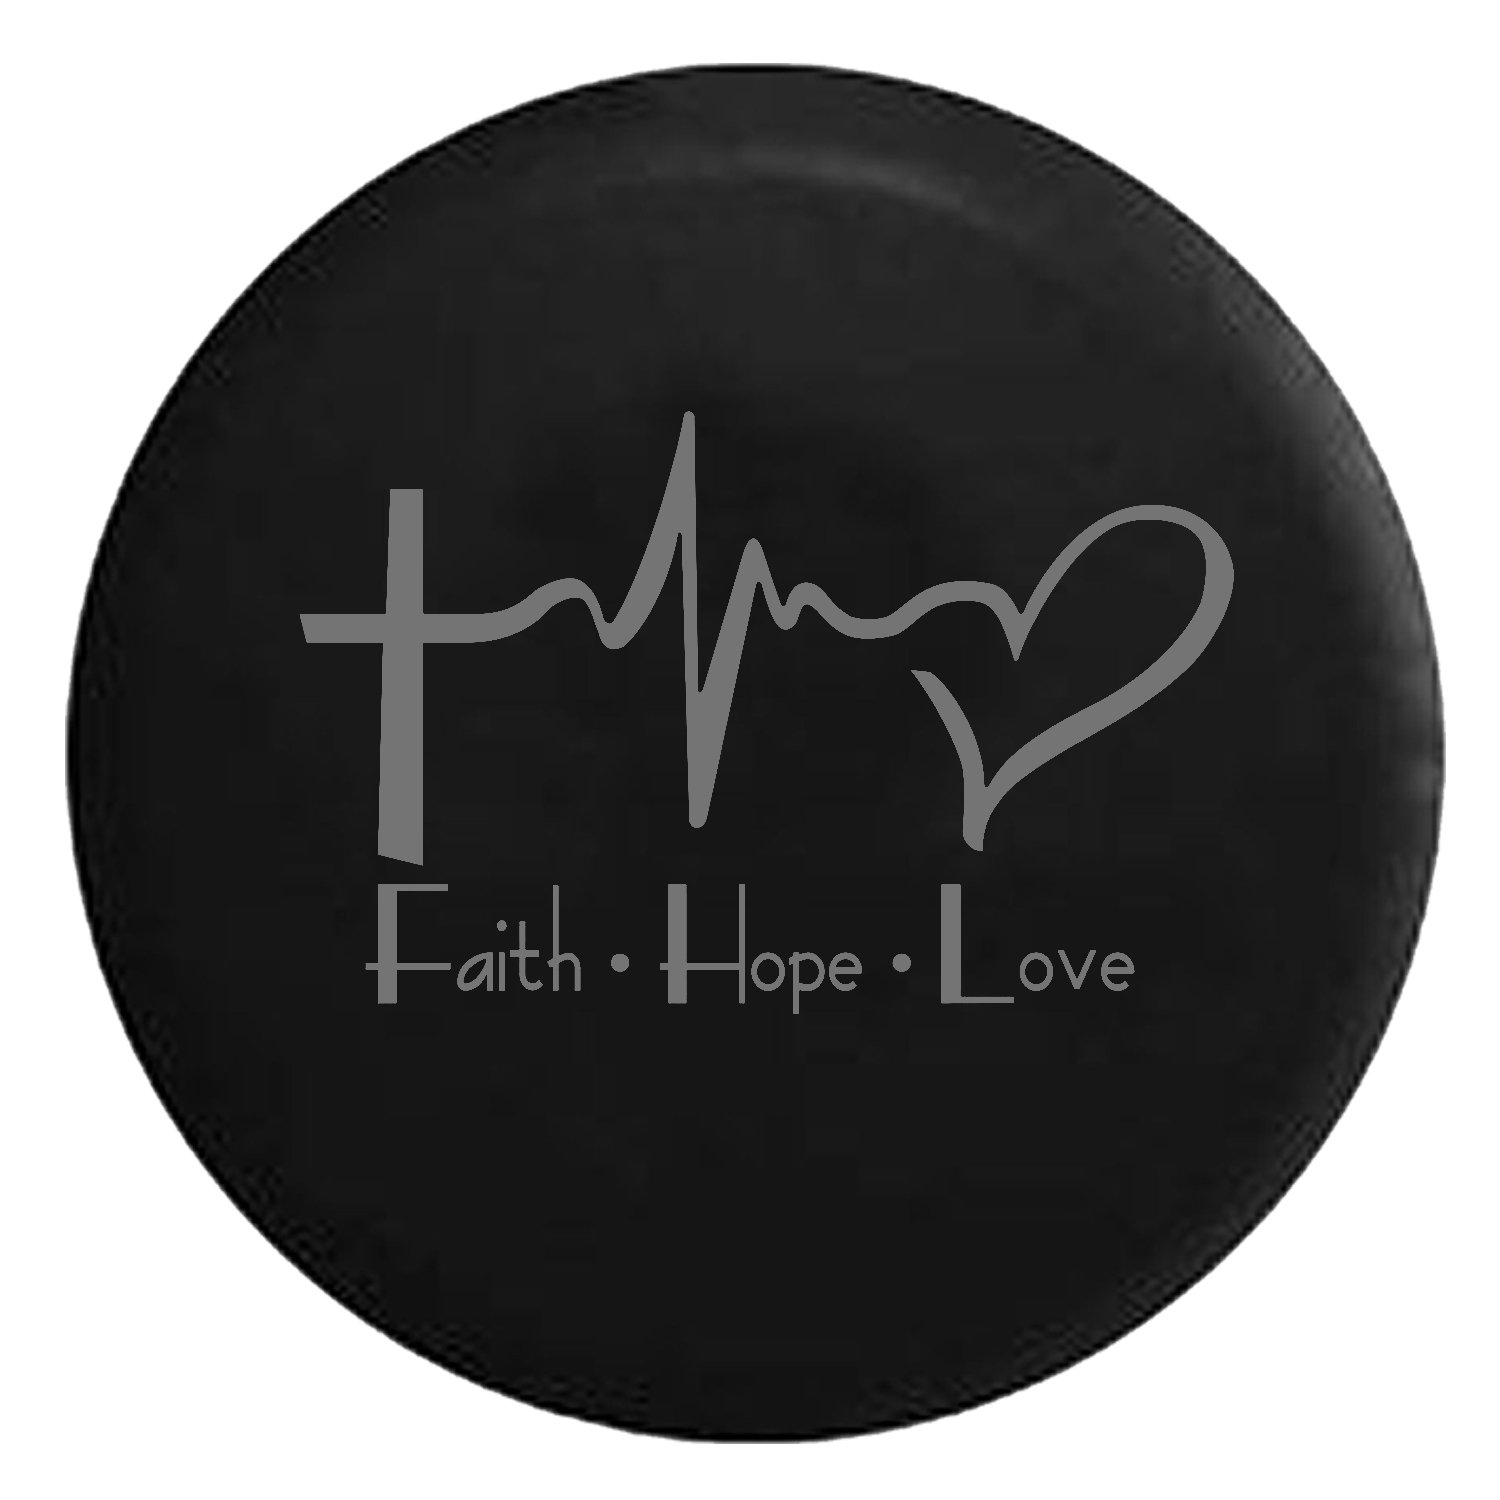 Faith Hope Love Cross Heart EKG Jesus Religious Spare Jeep Wrangler Camper SUV Tire Cover White Ink 32 in Silver Back Covers